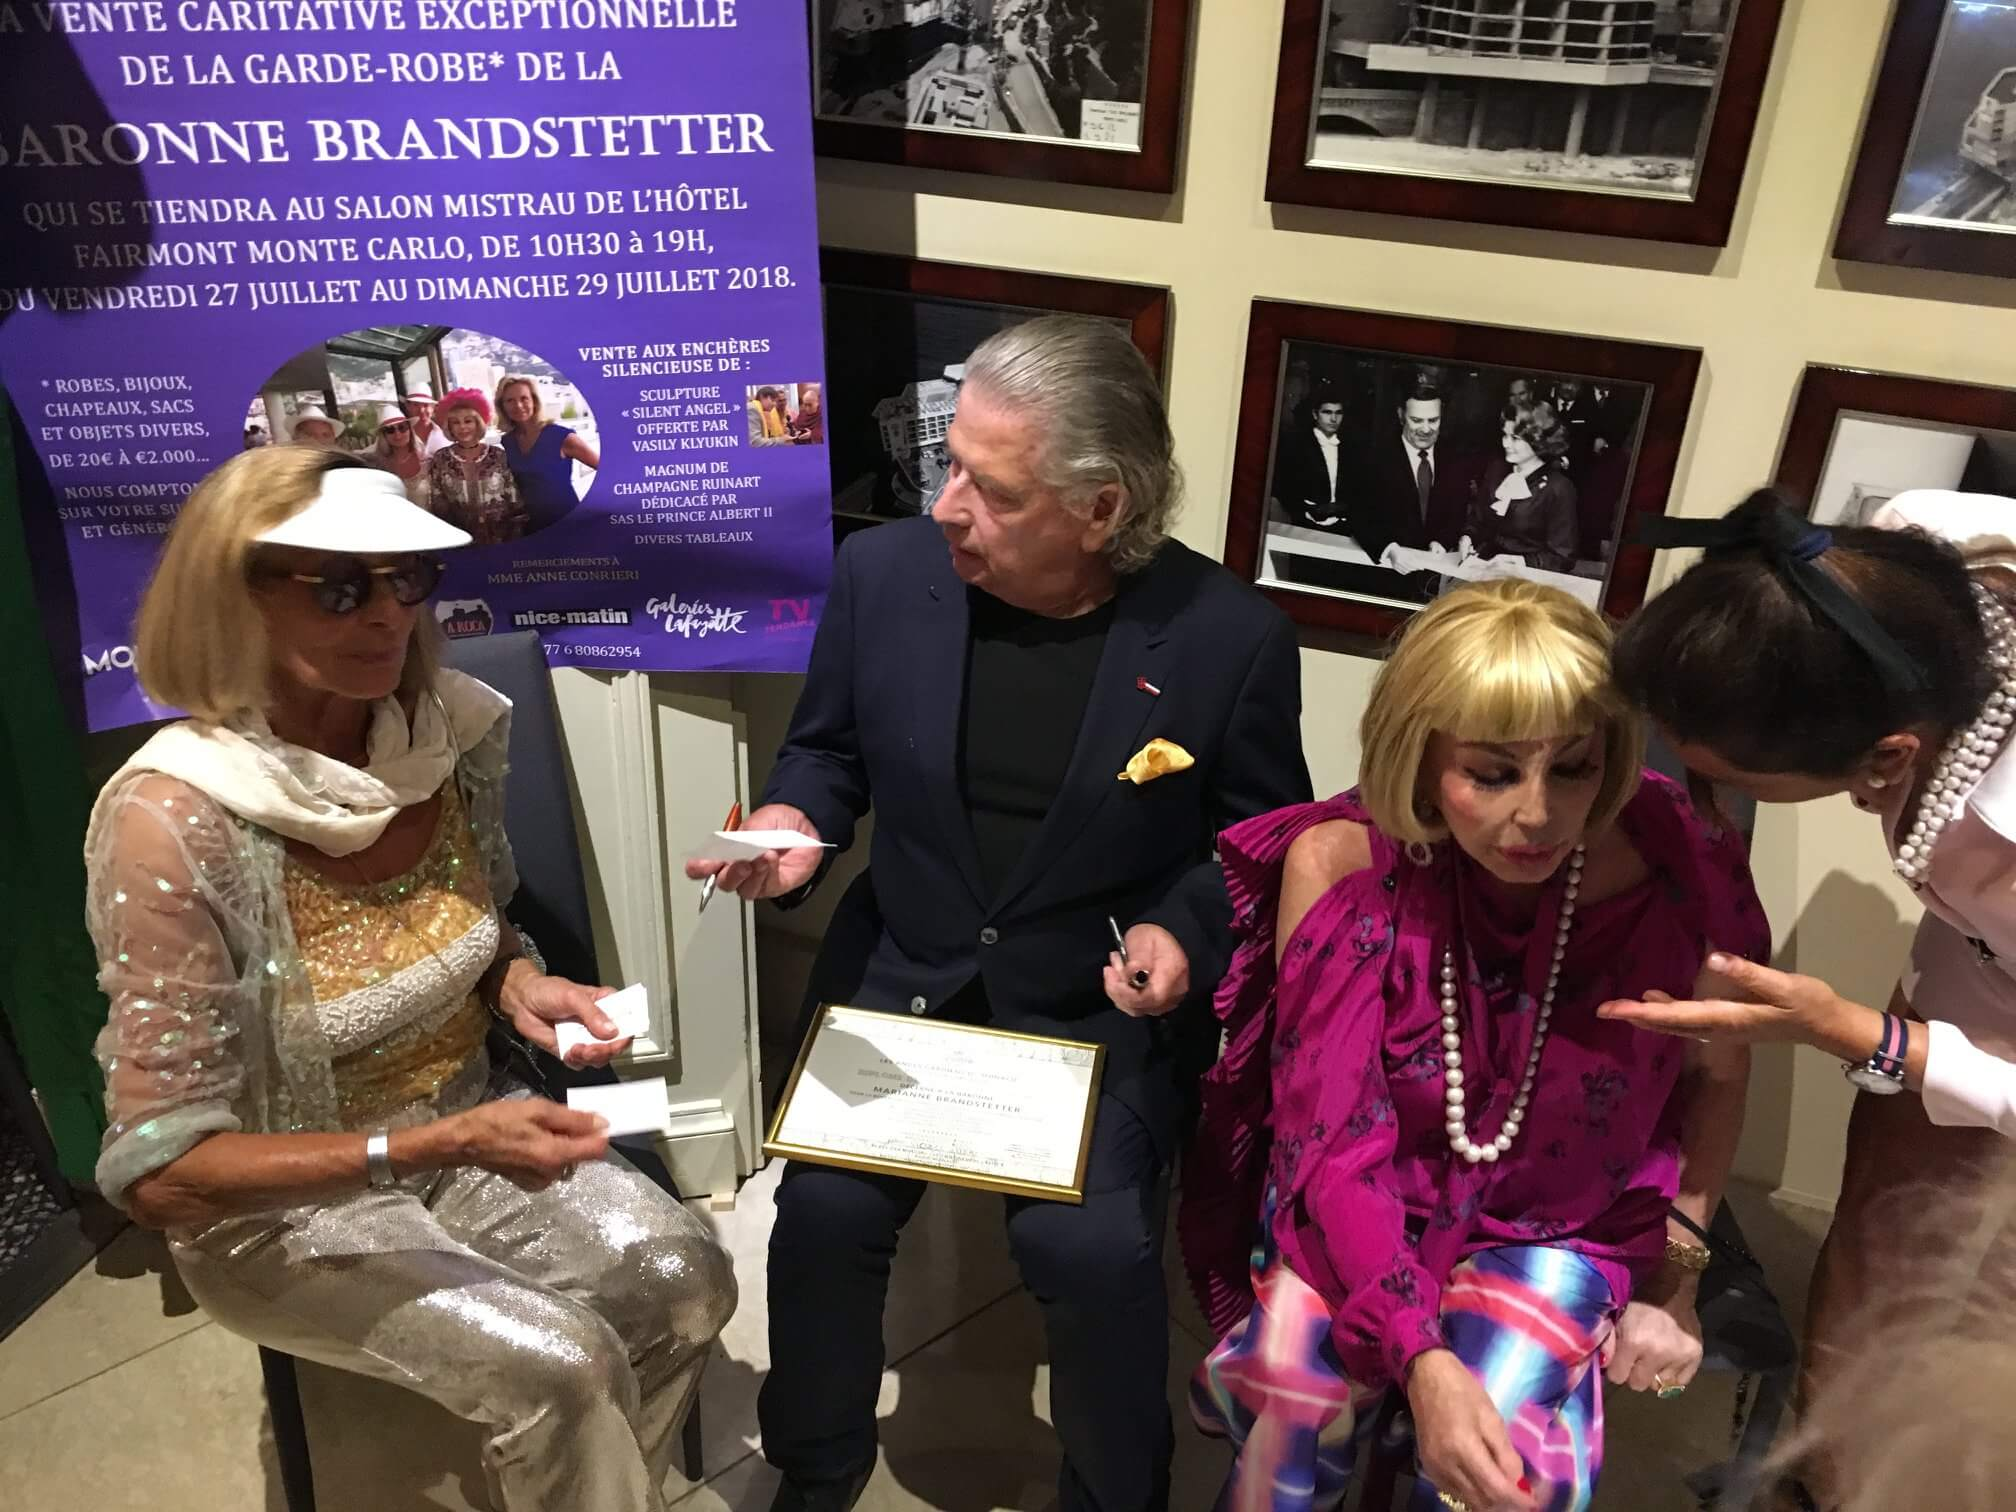 Baroness Brandstetter auction